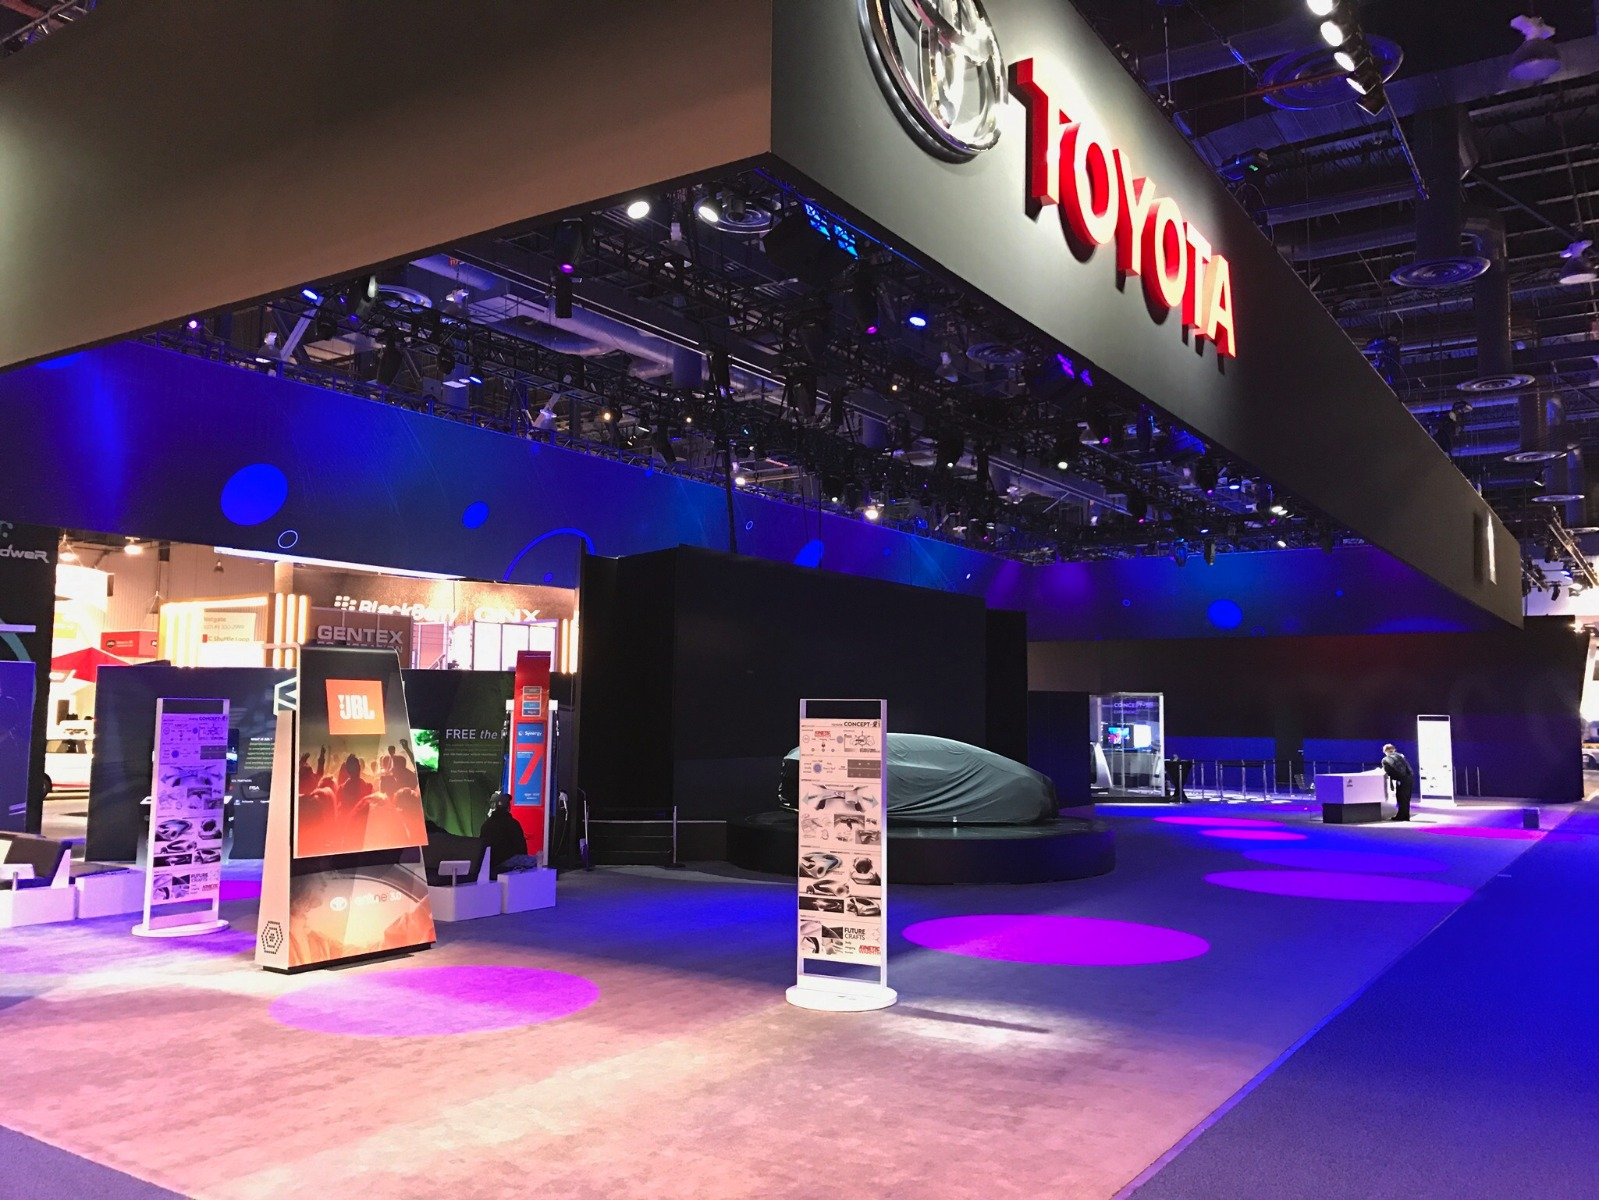 Held January 5-8 in Las Vegas CES is the place to see whatu0027s next in tech and has always attracted the latest in automobile technology. & TLS Productions Uses Elation Lighting on Award-winning Toyota Booth ...